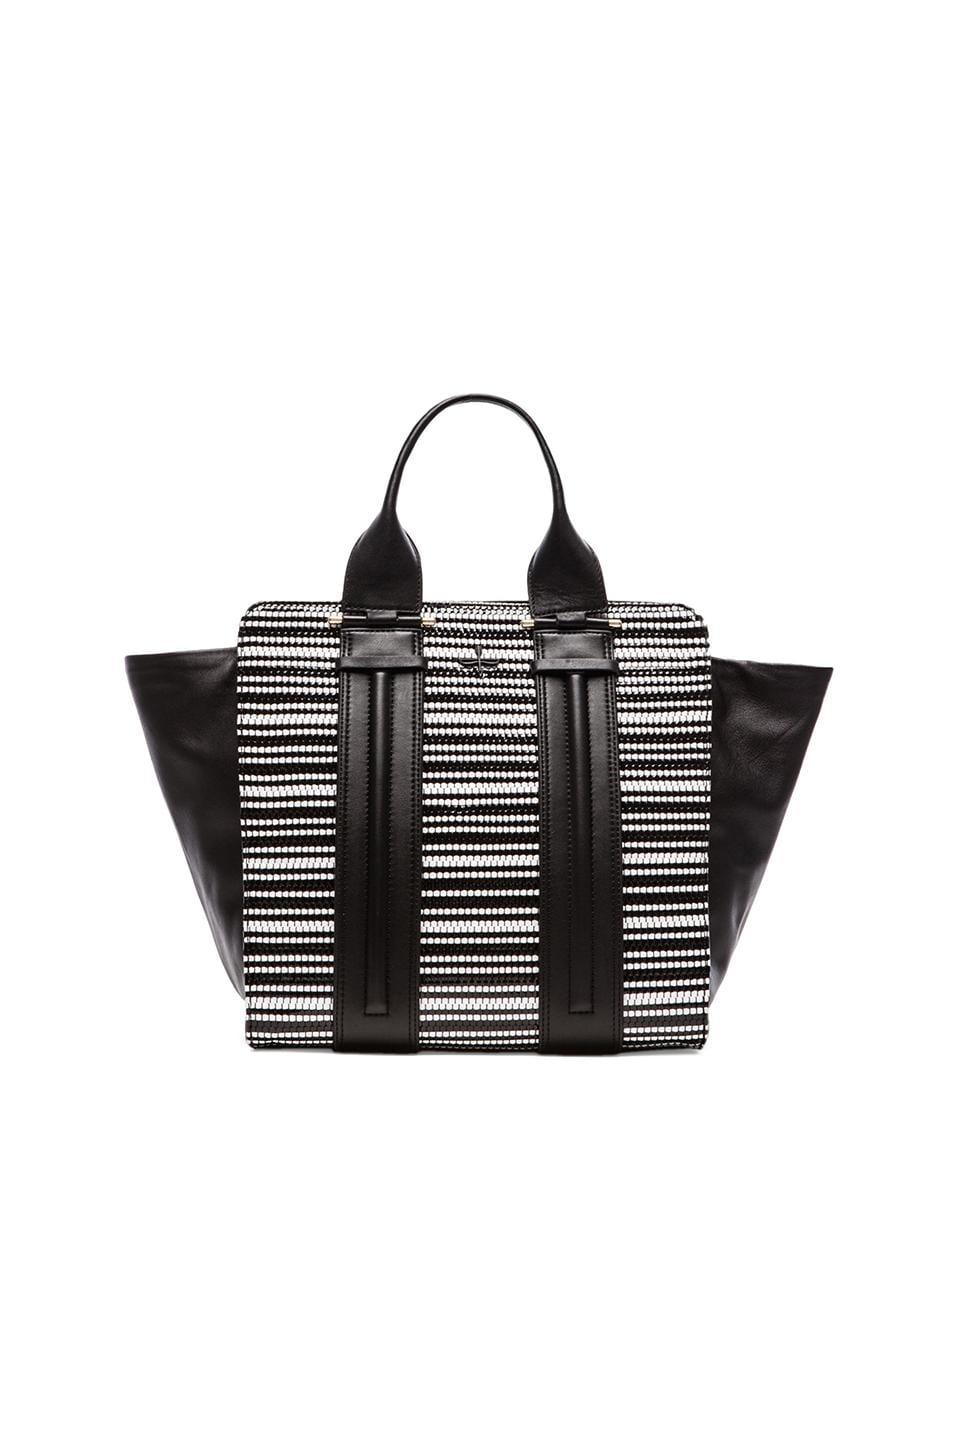 Pour La Victoire The Servant Tote in Black & White Weave